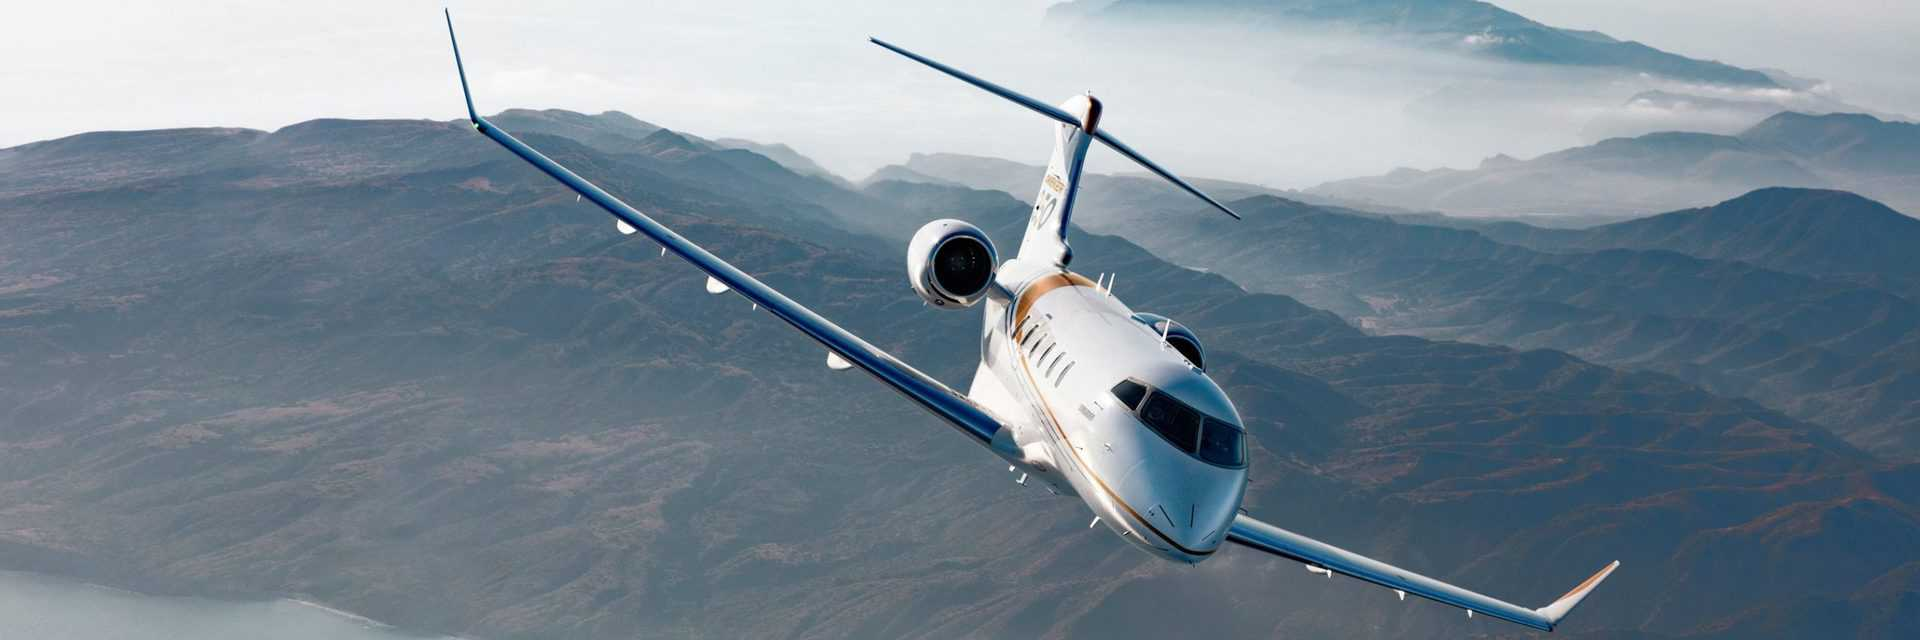 Gulfstream G280 vs Bombardier Challenger 350 – Which Aircraft Should I Use?